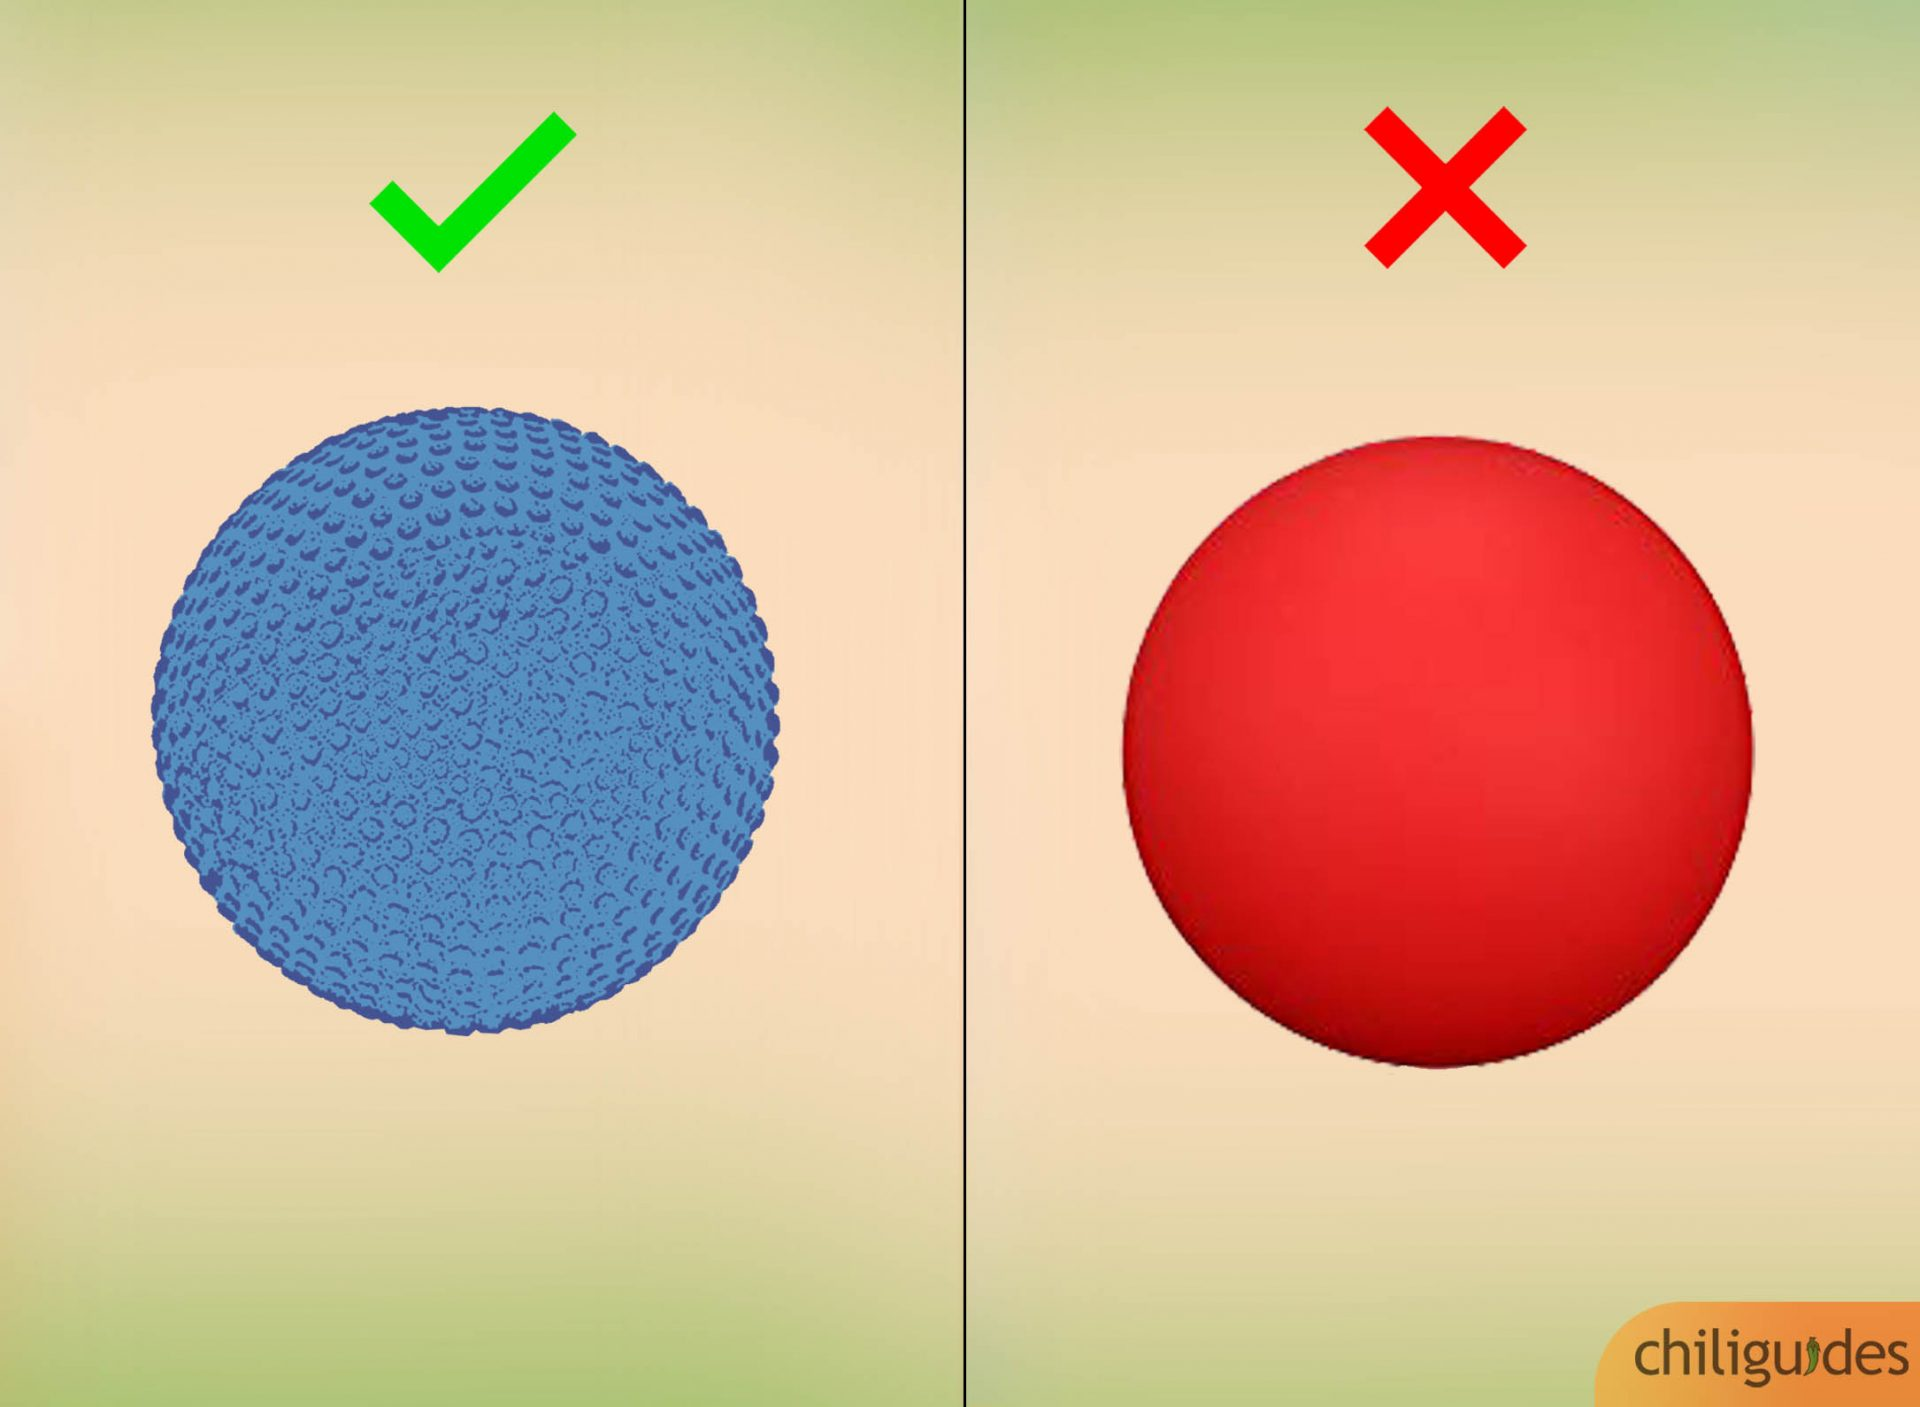 The ball should not be too light or smooth.